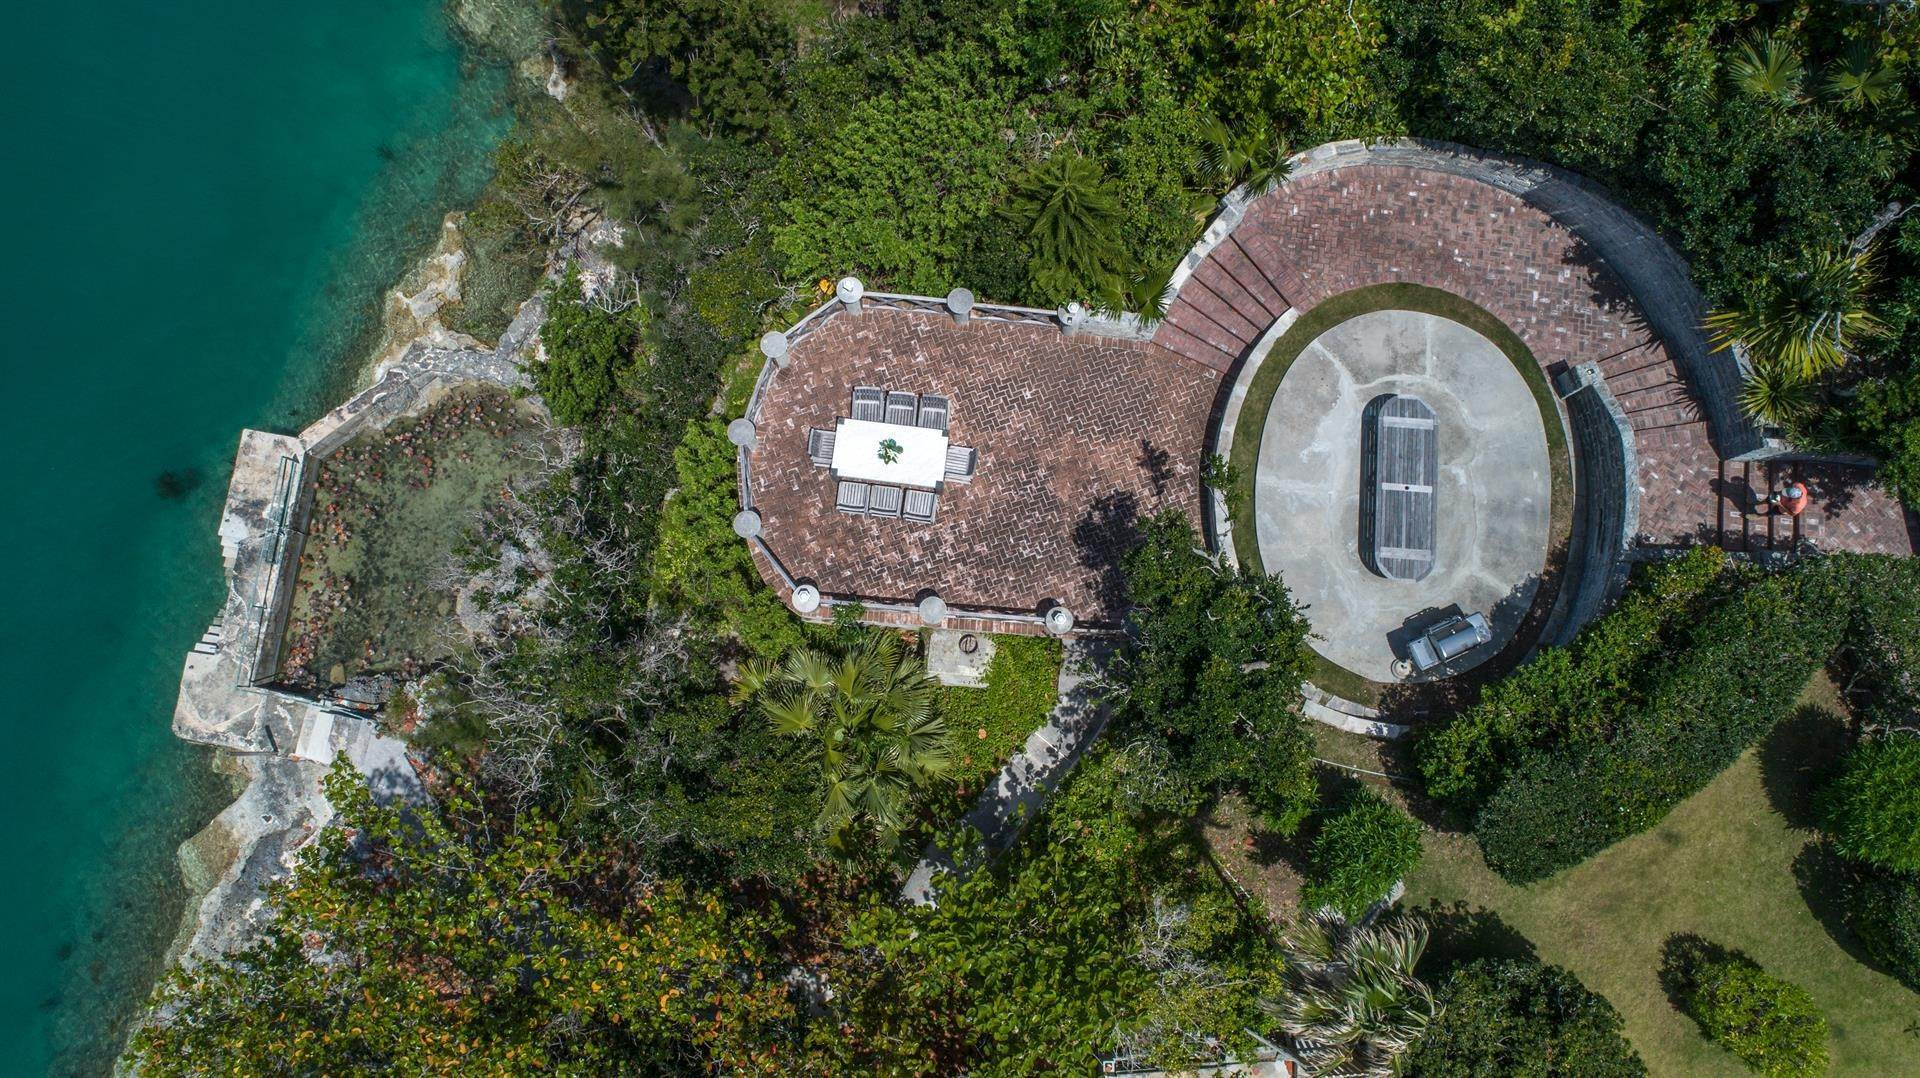 6. Vid Vattnet för Försäljning vid Heron Hill On The Great Sound Heron Hill On The Great Sound, 31 Riddell's Bay Road,Bermuda – Sinclair Realty